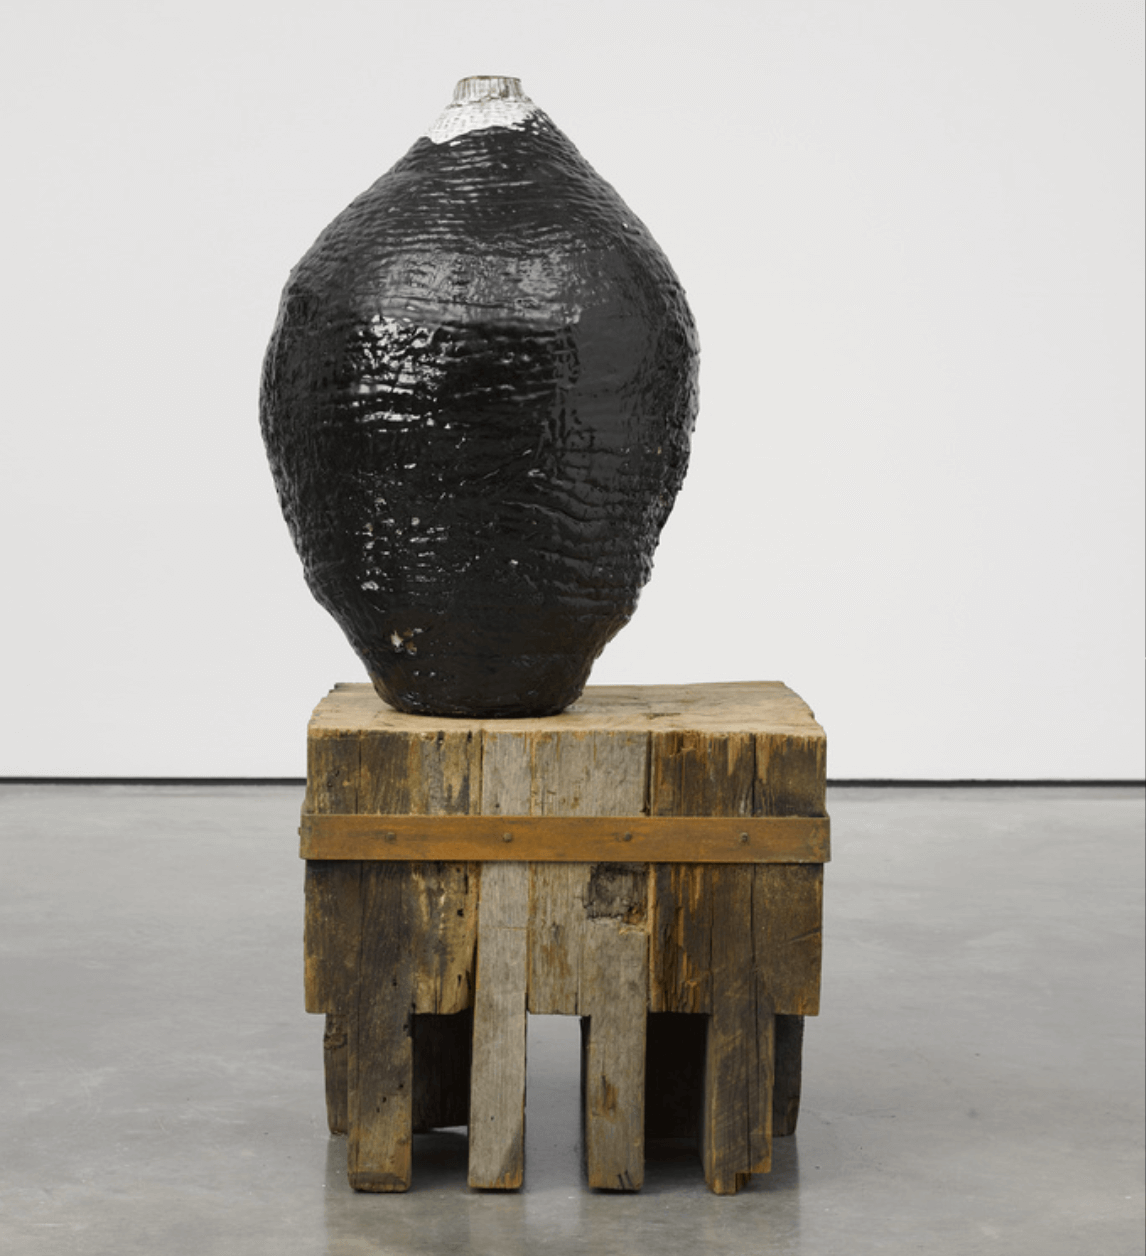 THEASTER GATES Tarred Vessel, 2015 Cotton, metal, glazed clay, plastic, tar, Ceramics, sculpture, vessels, texture